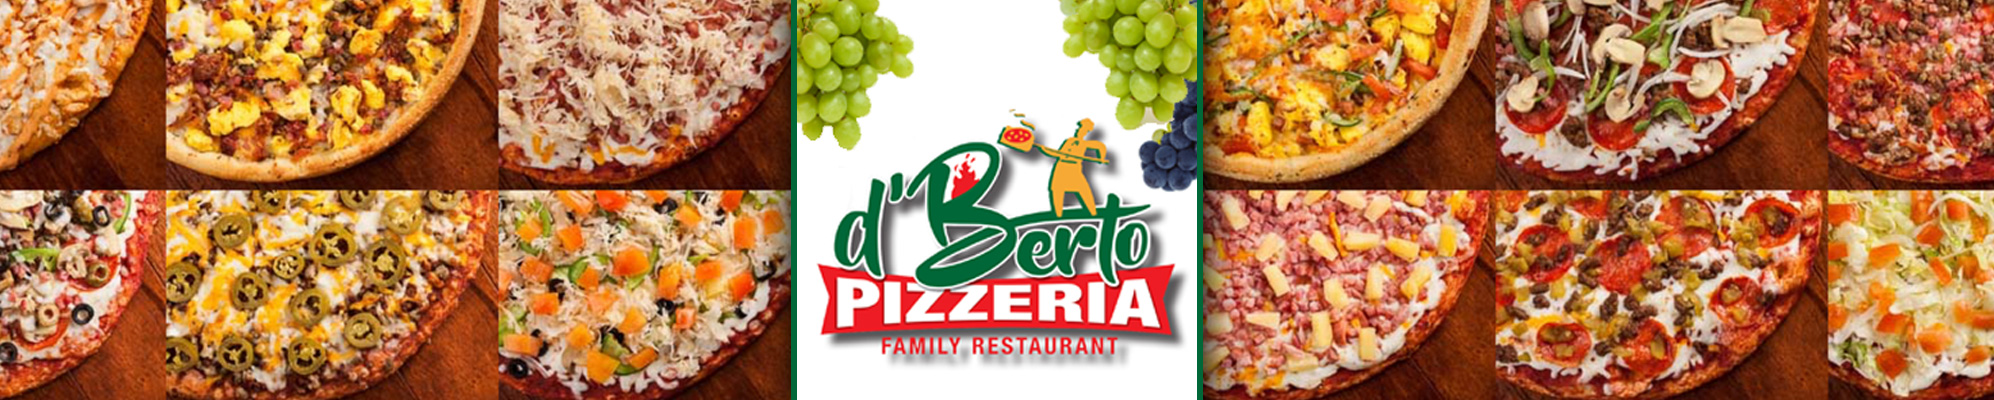 Welcome to d'Berto�s